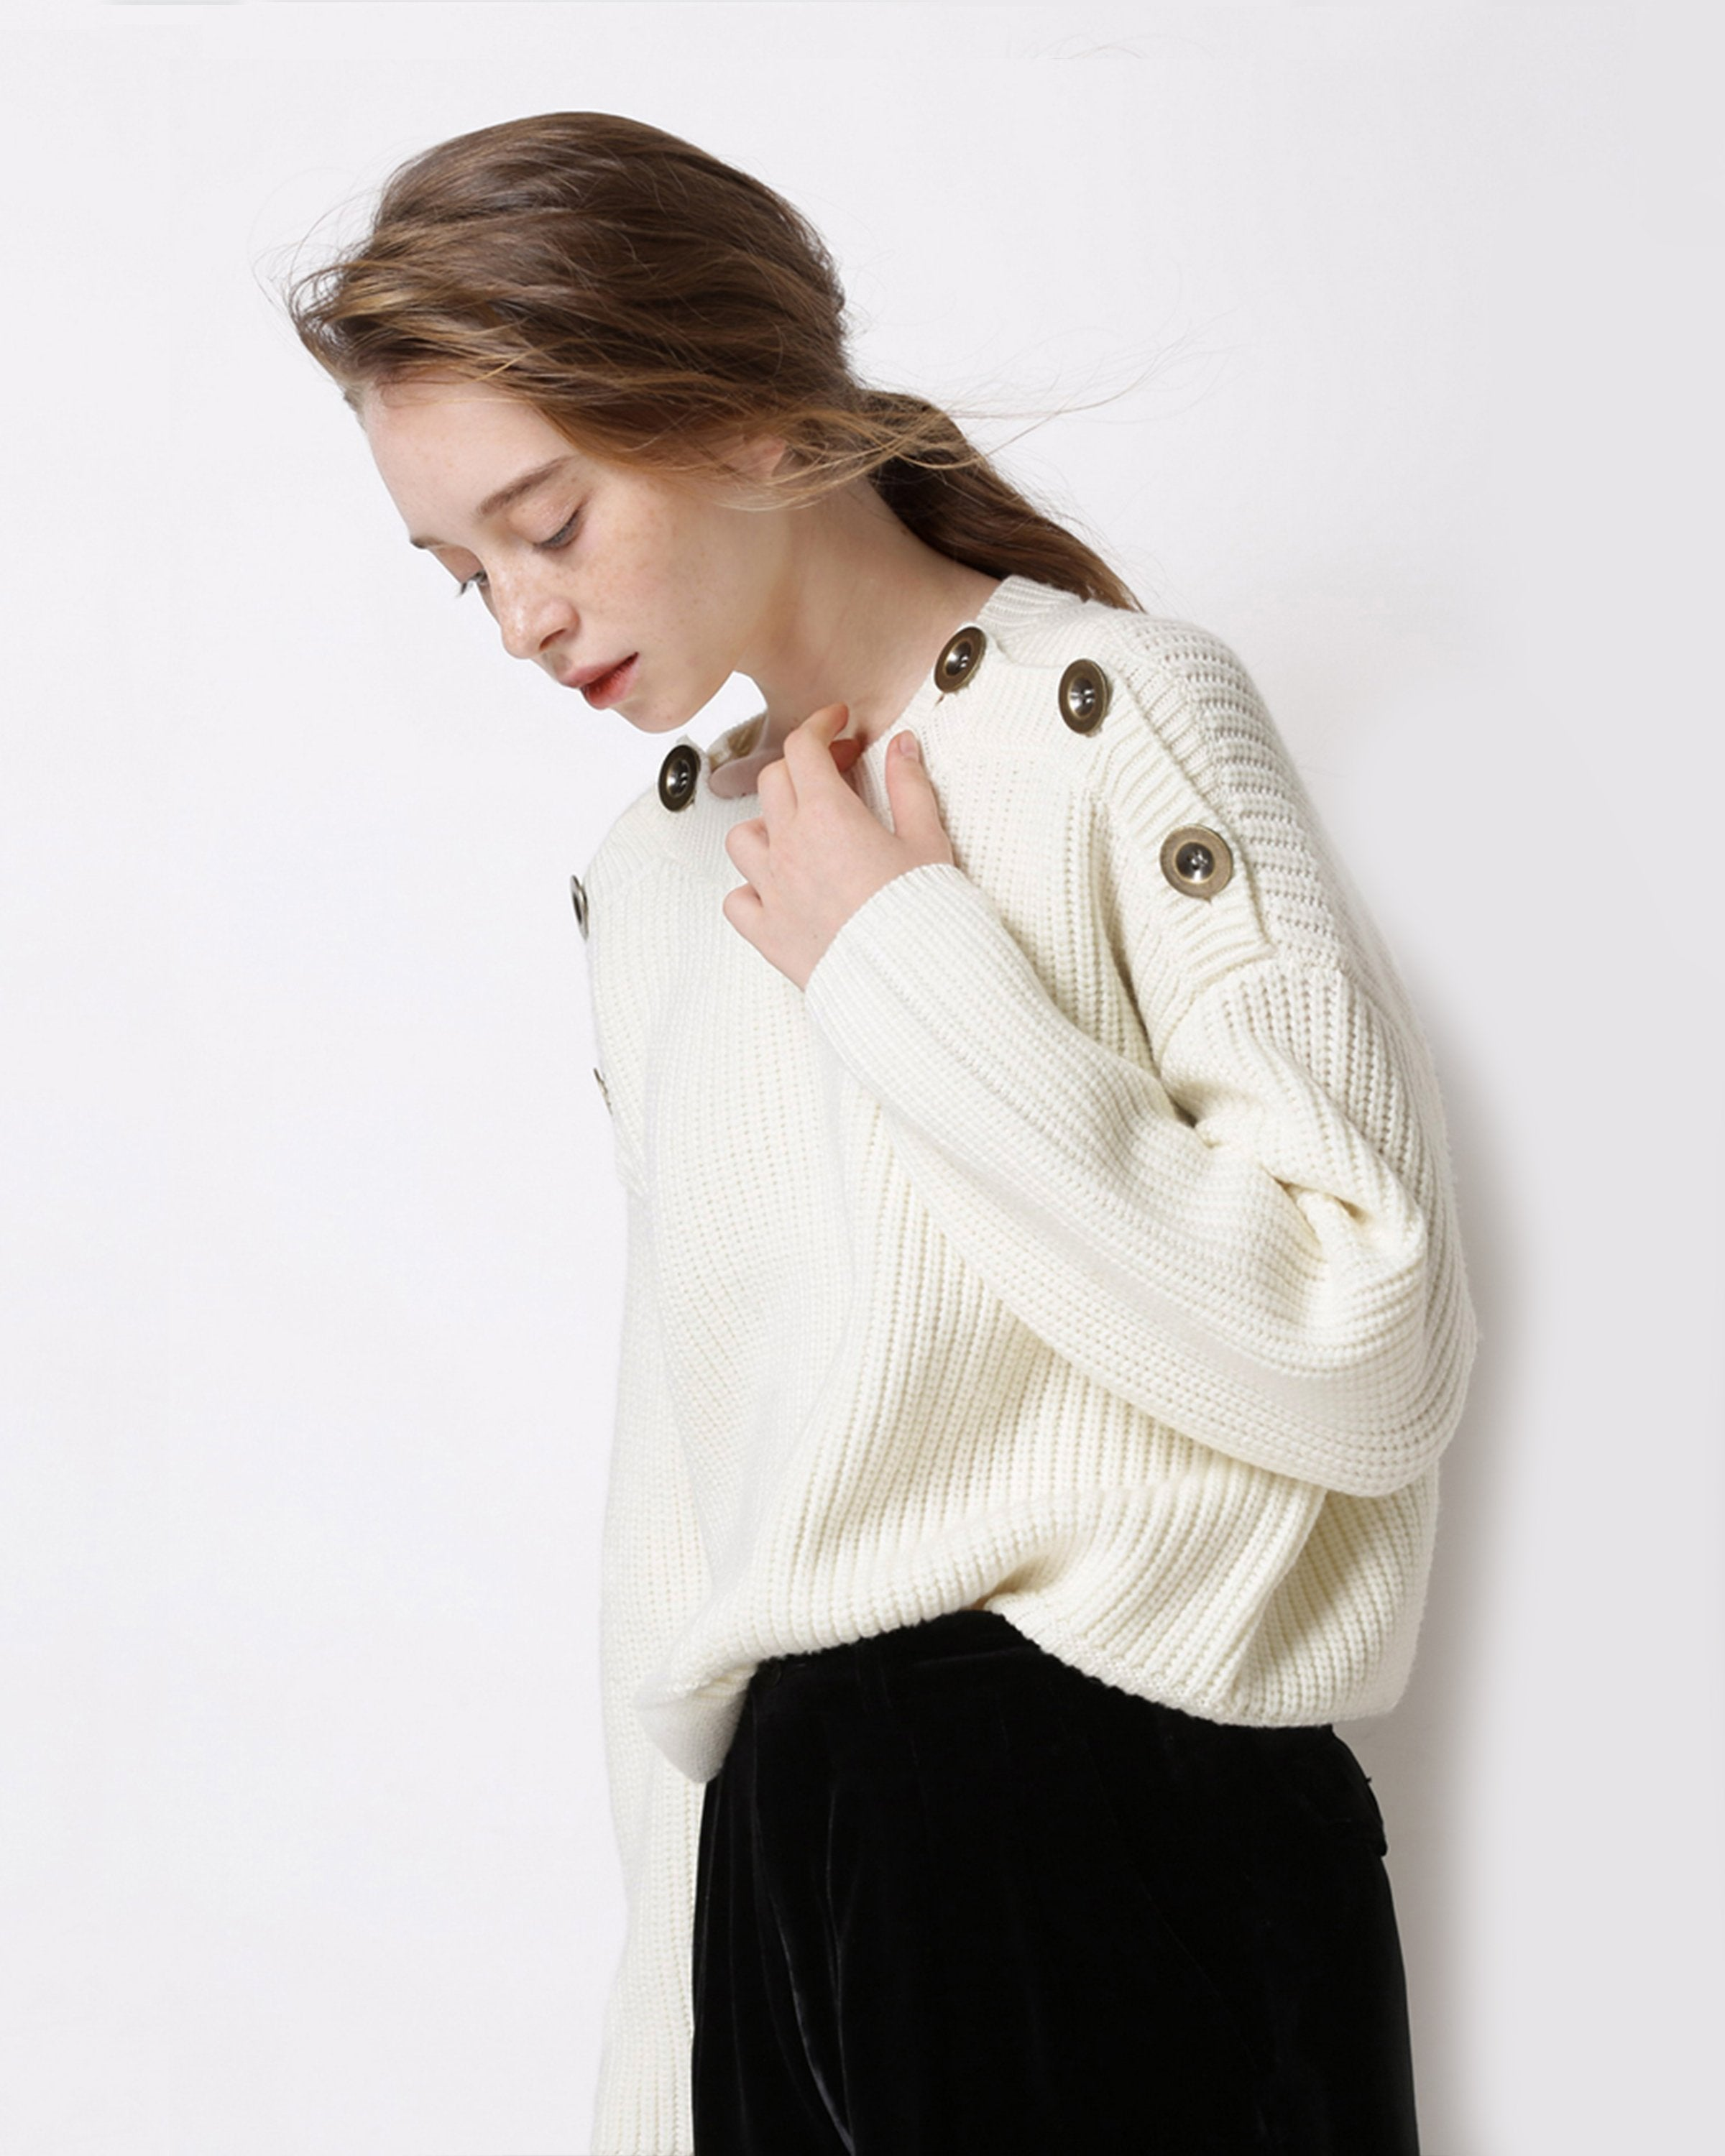 Galloway Creme Sweater